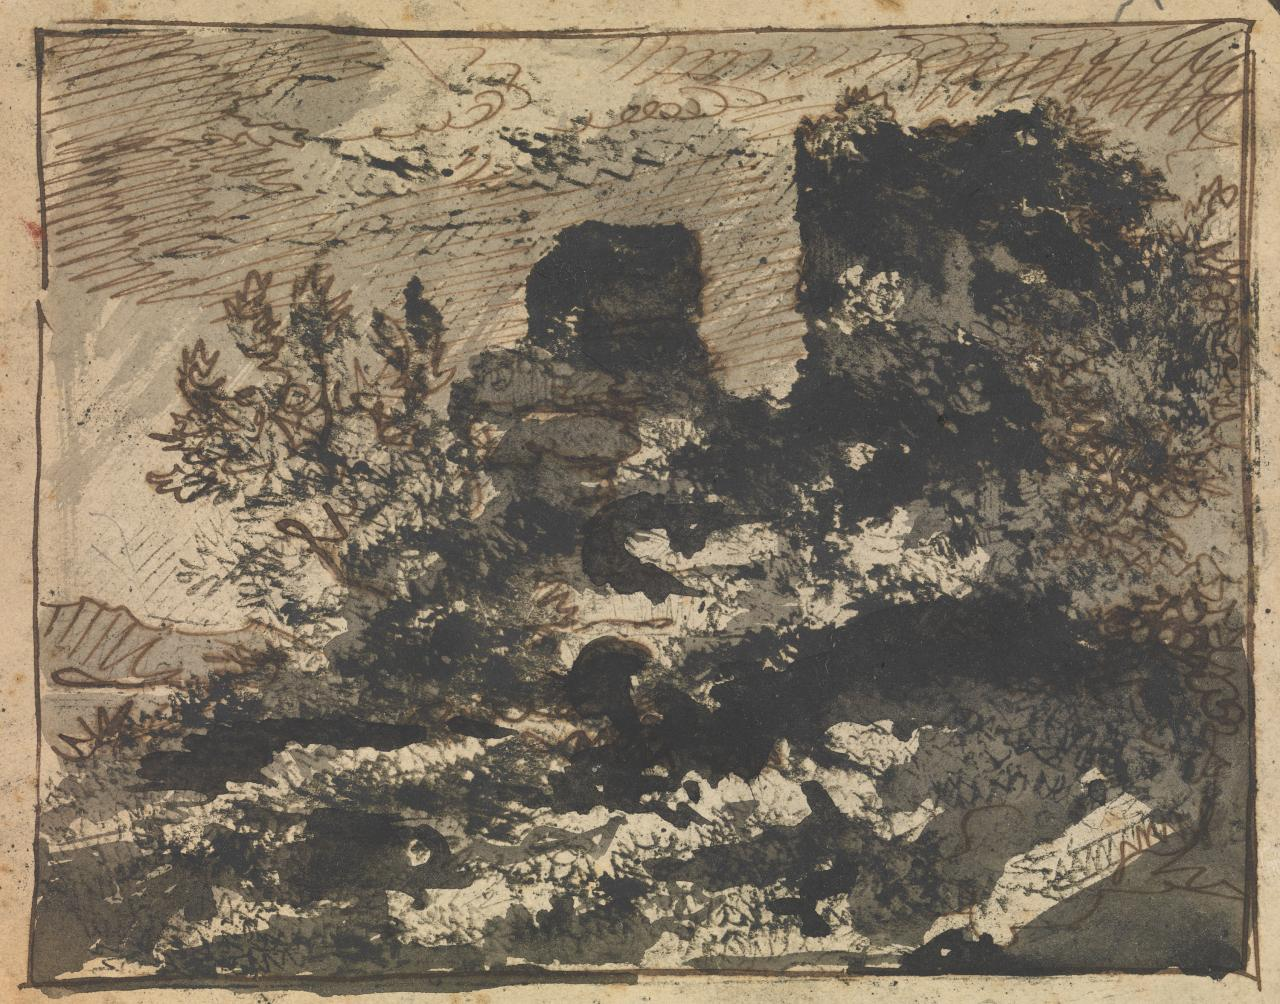 Untitled (Sketch of ruins on the edge of a lake)